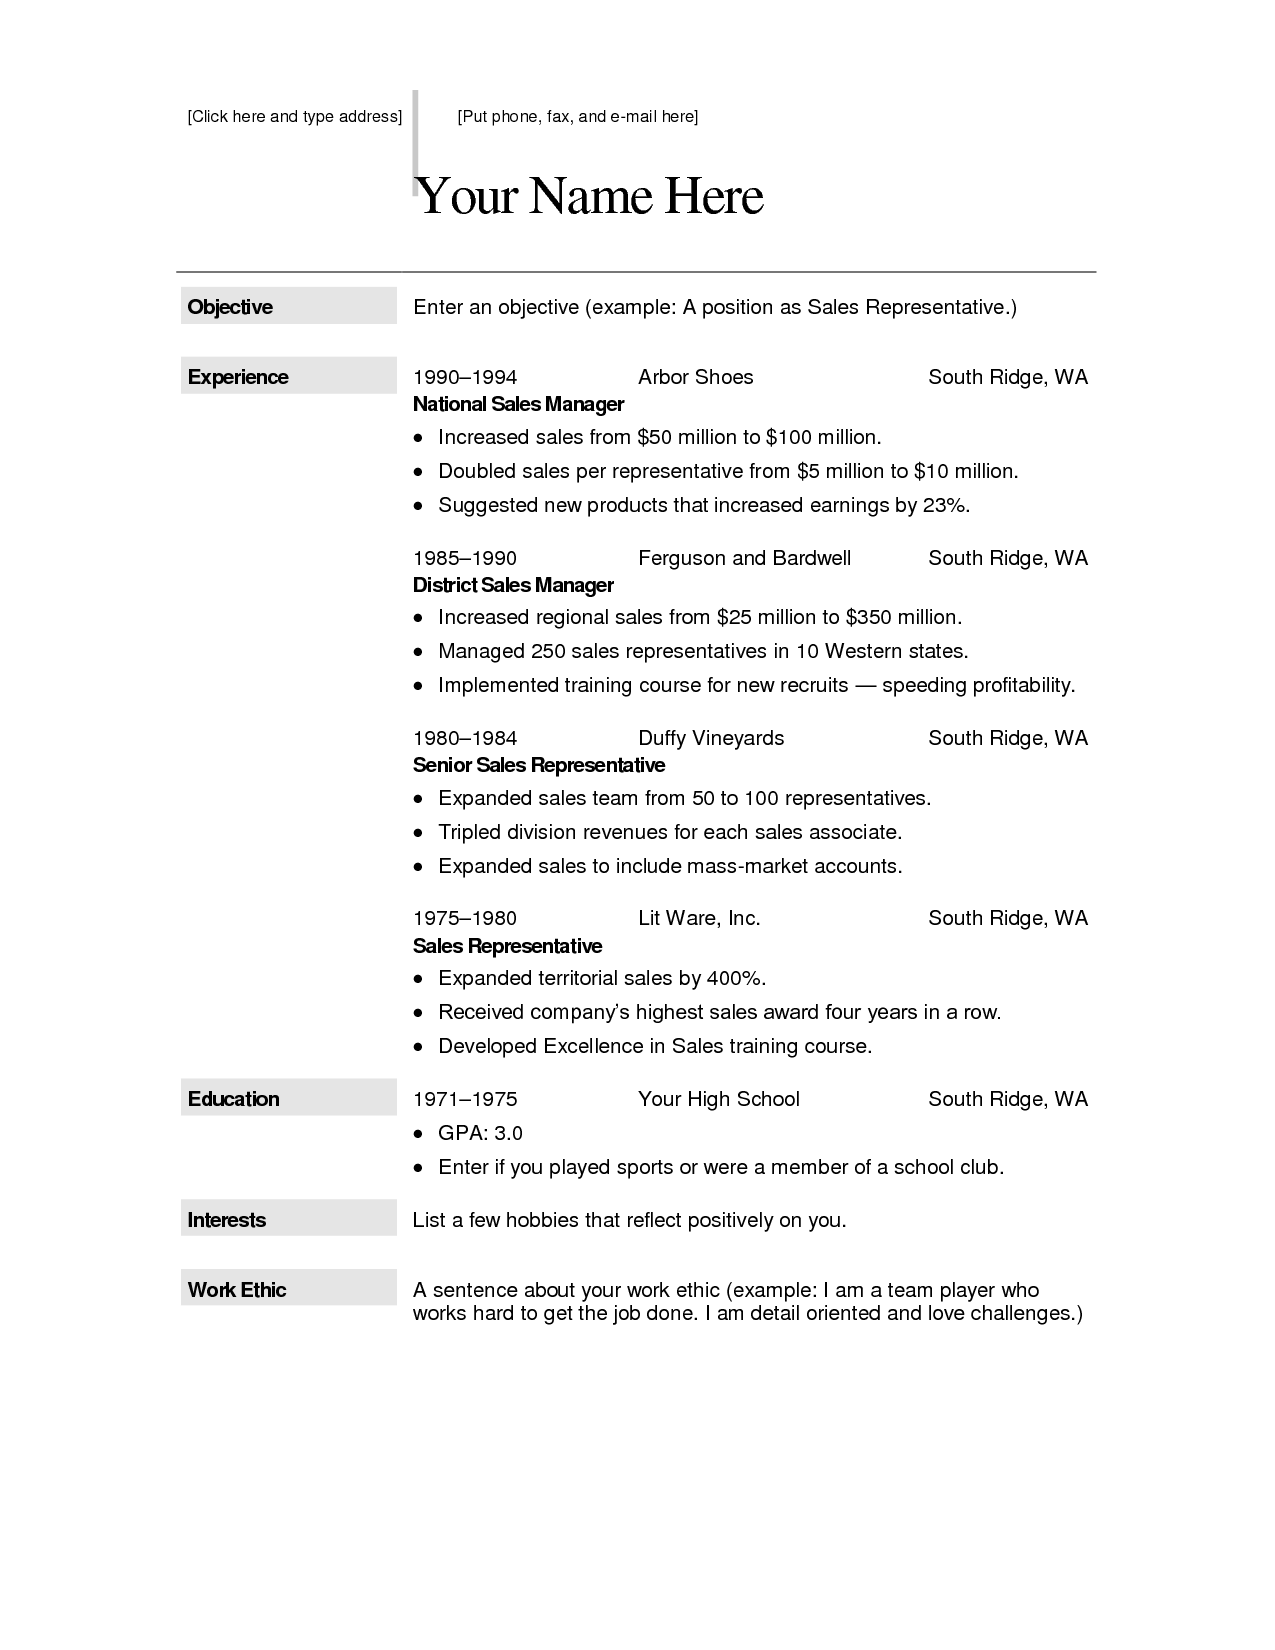 Free Resume Template Or Tips Cool Free Creative Resume Templates For Macfree Creative Resume